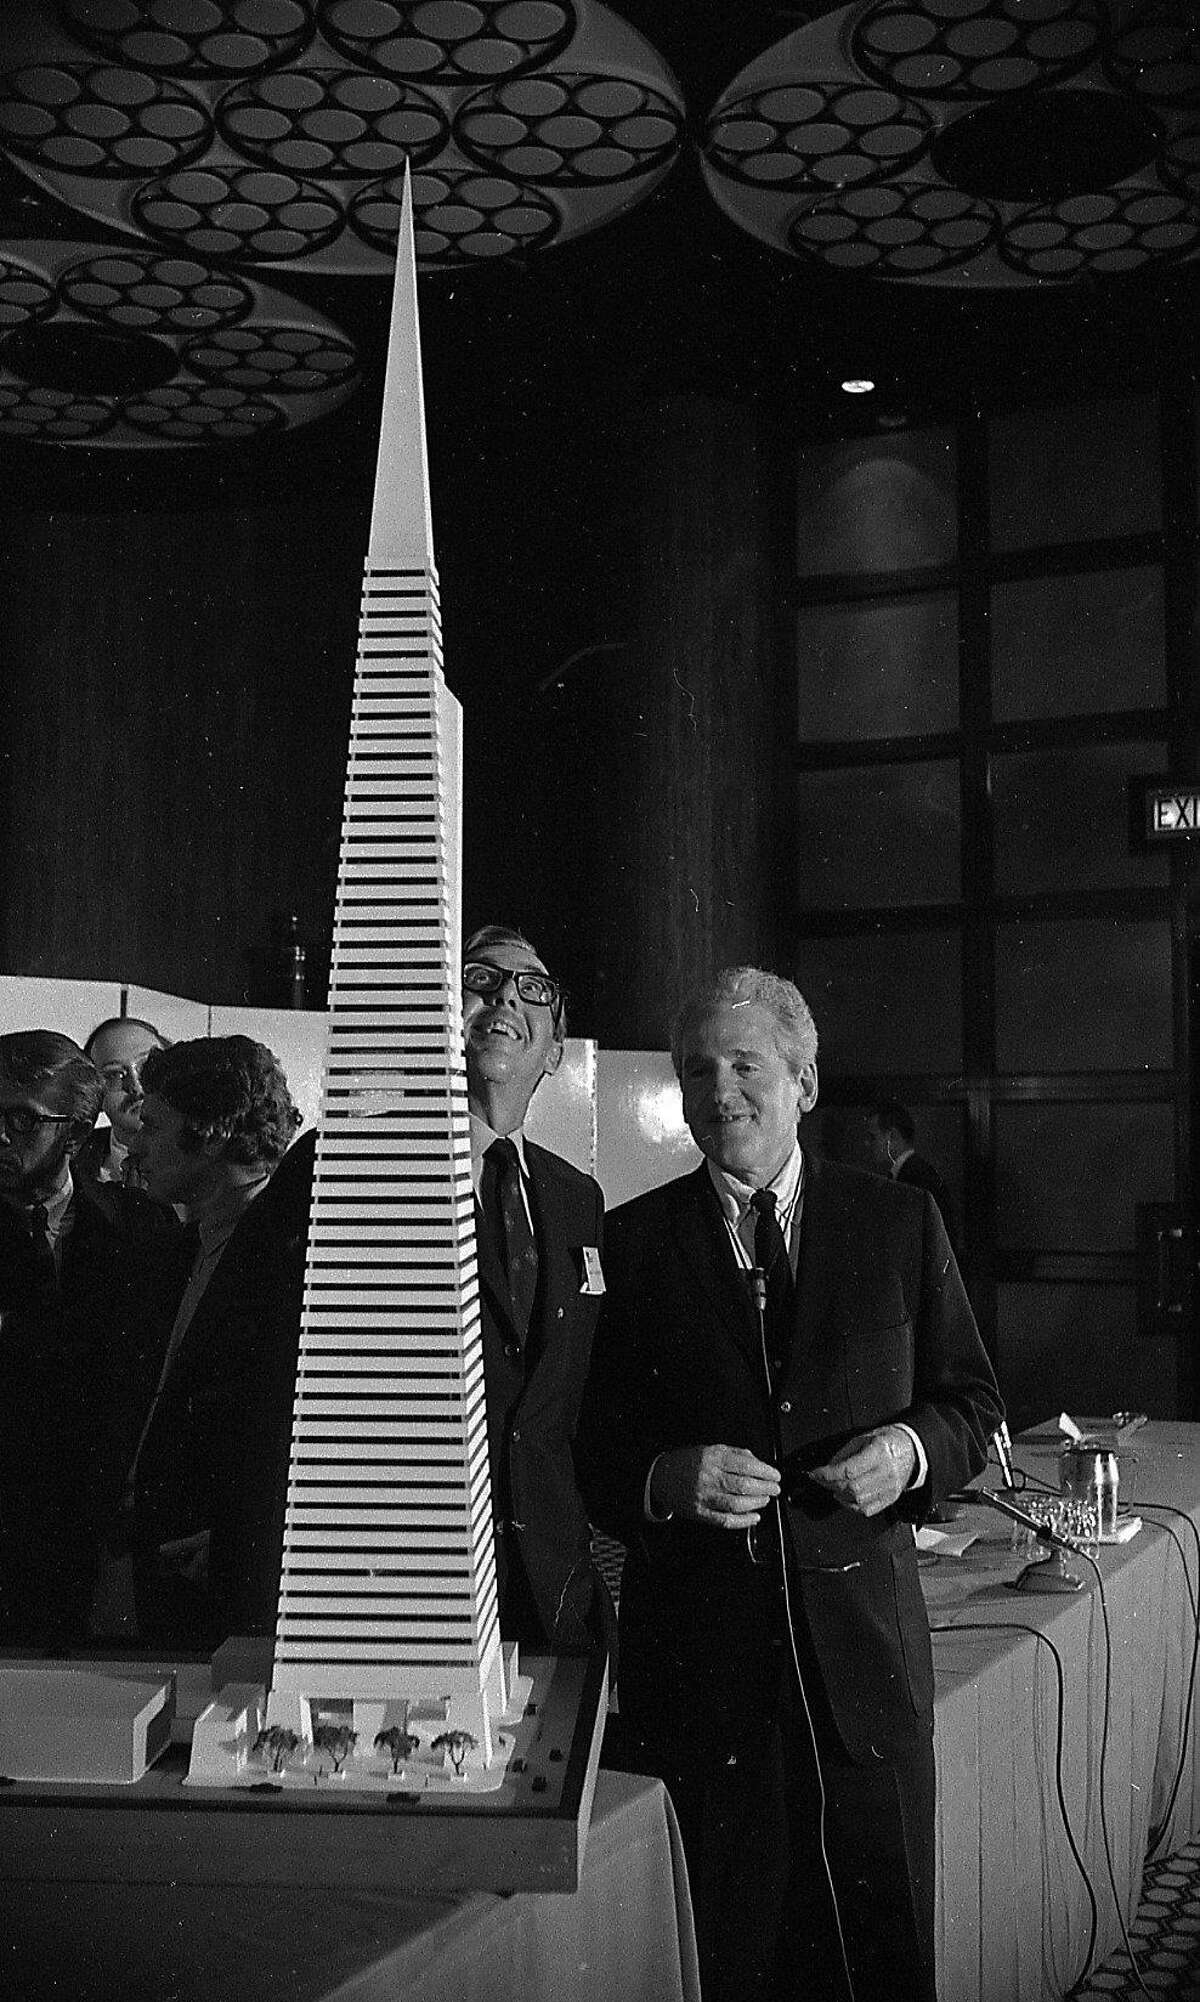 Model of the Transamerica Pyramid Building being planned Photos shot 01/1969